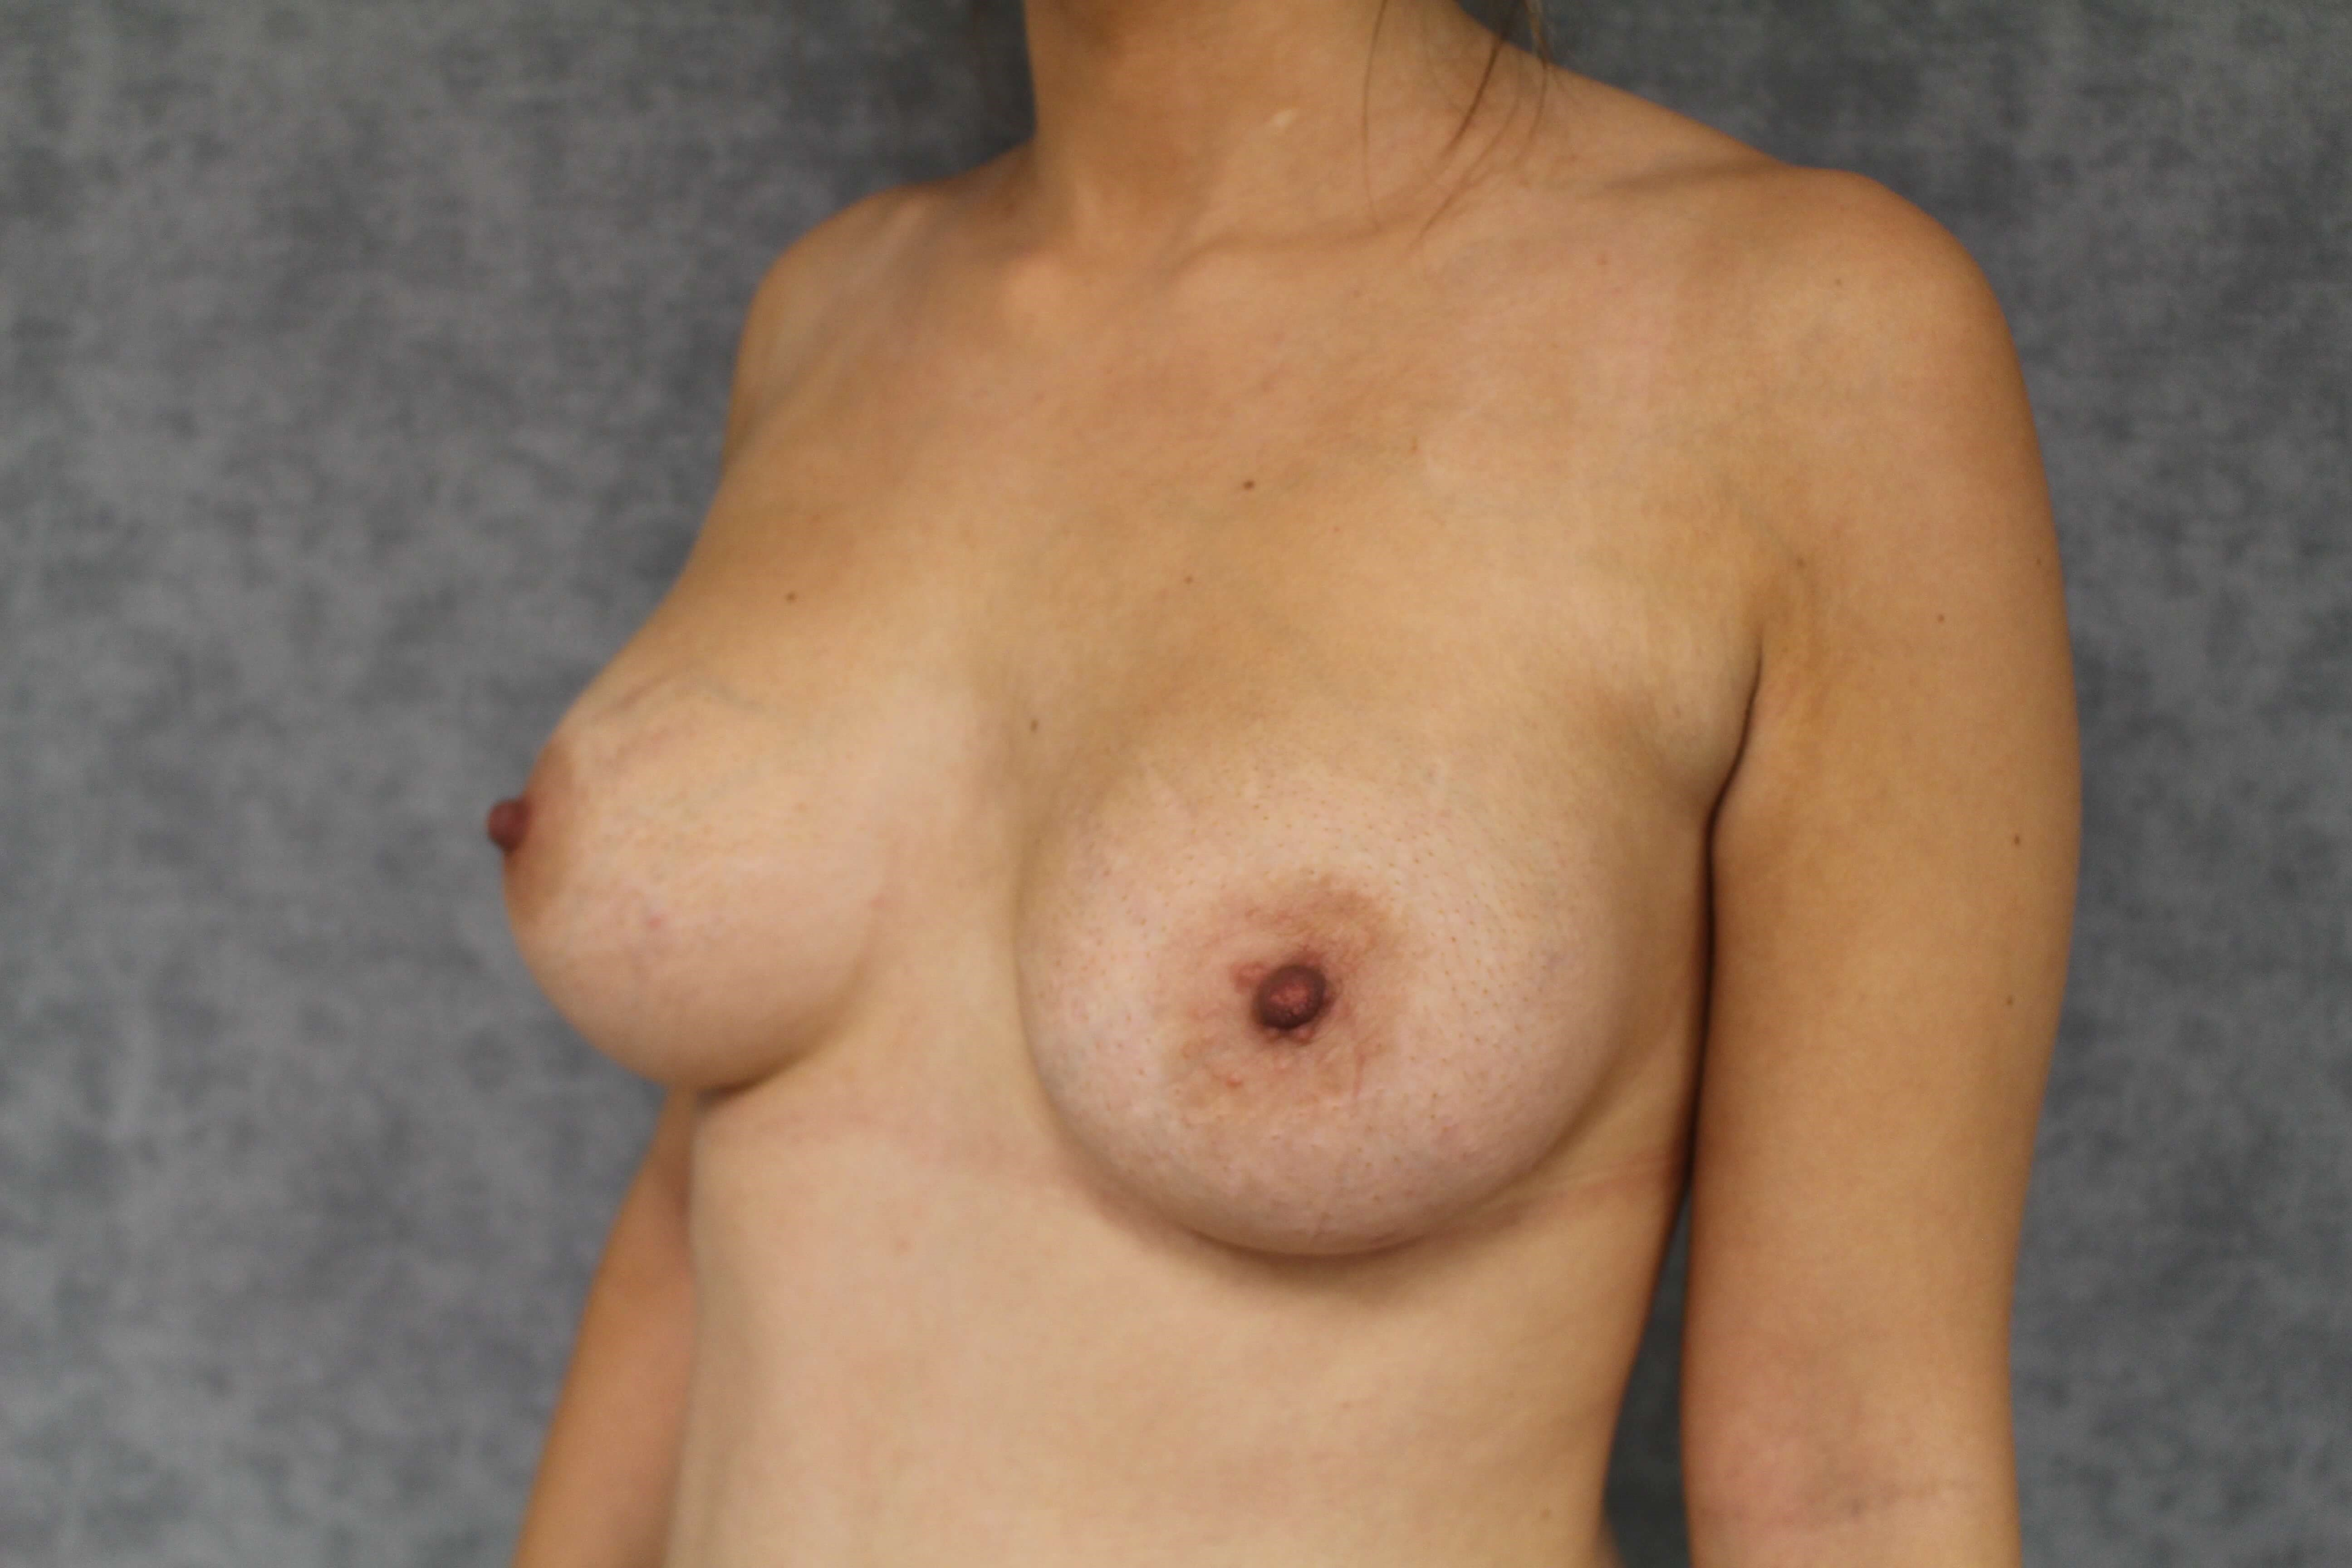 325cc Silicone Implants After